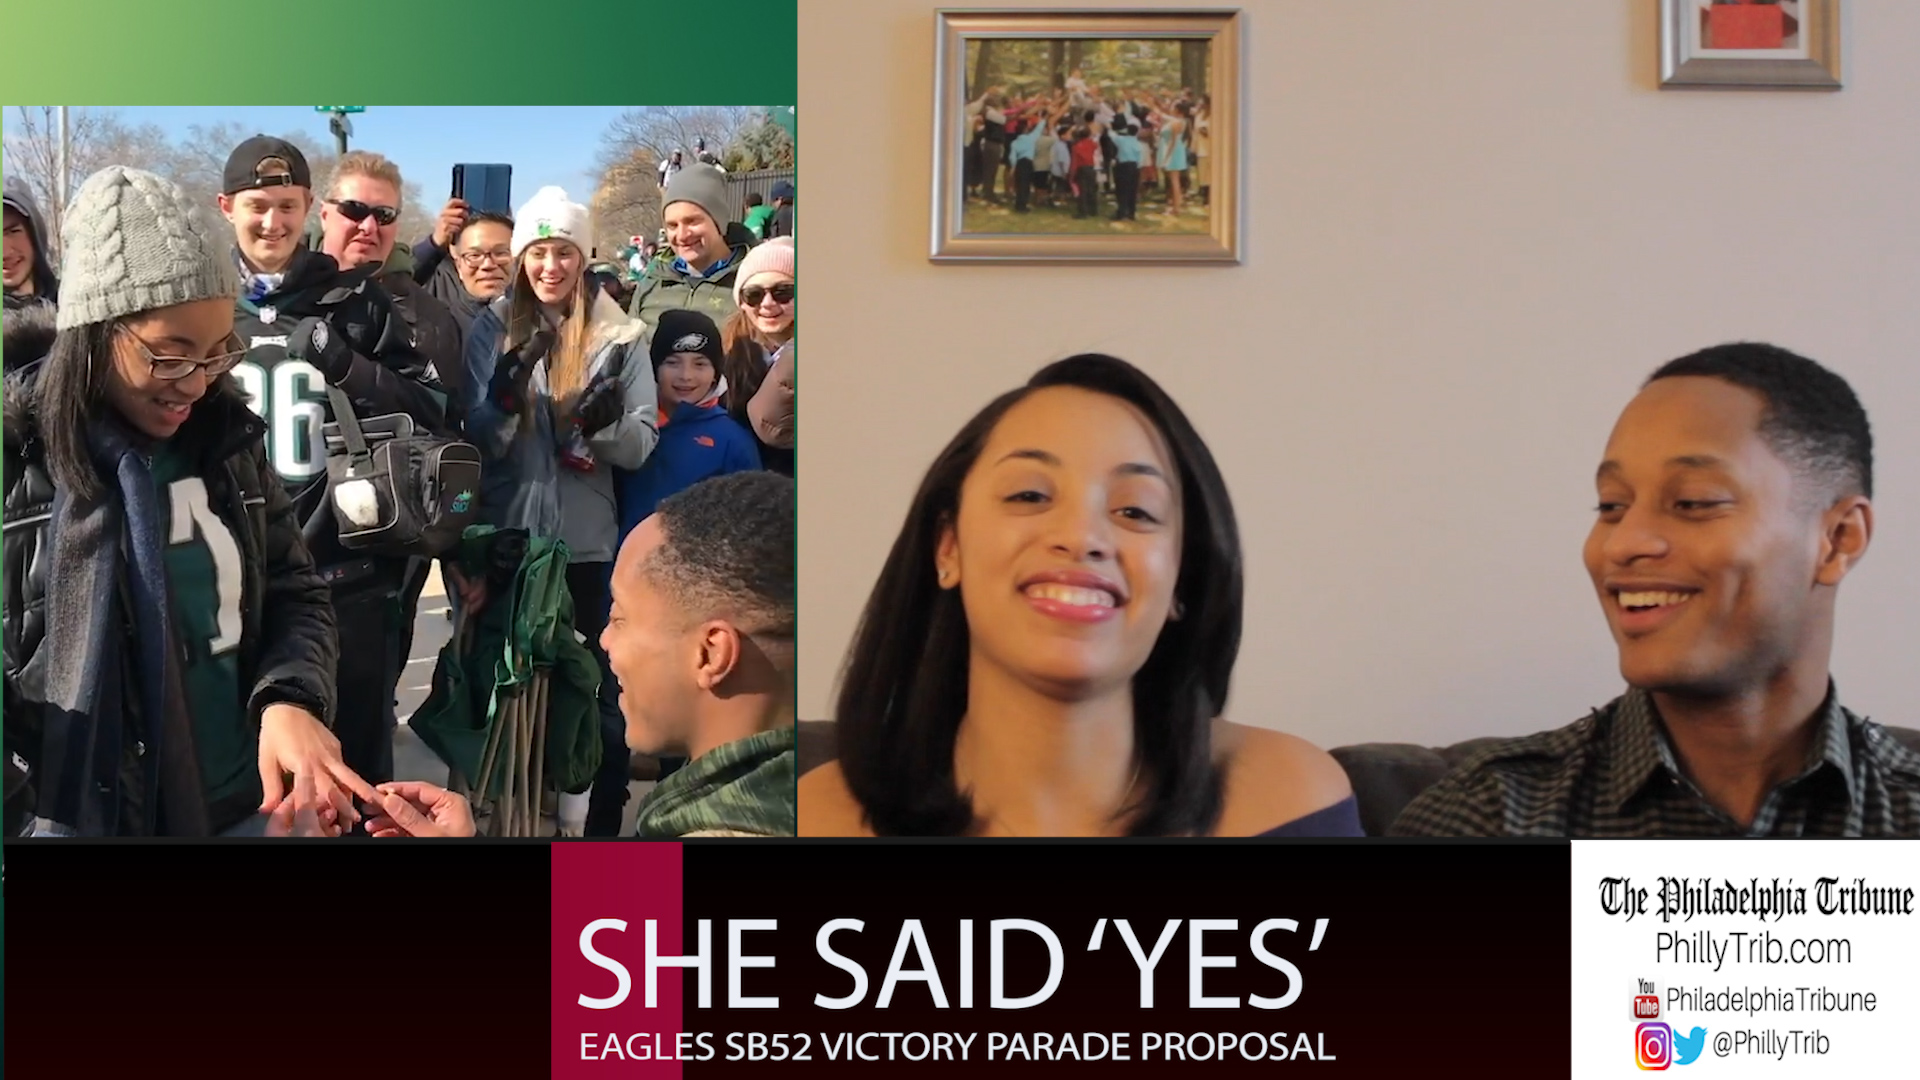 02/09/18: She said 'yes' : Eagles Super Bowl victory parade proposal